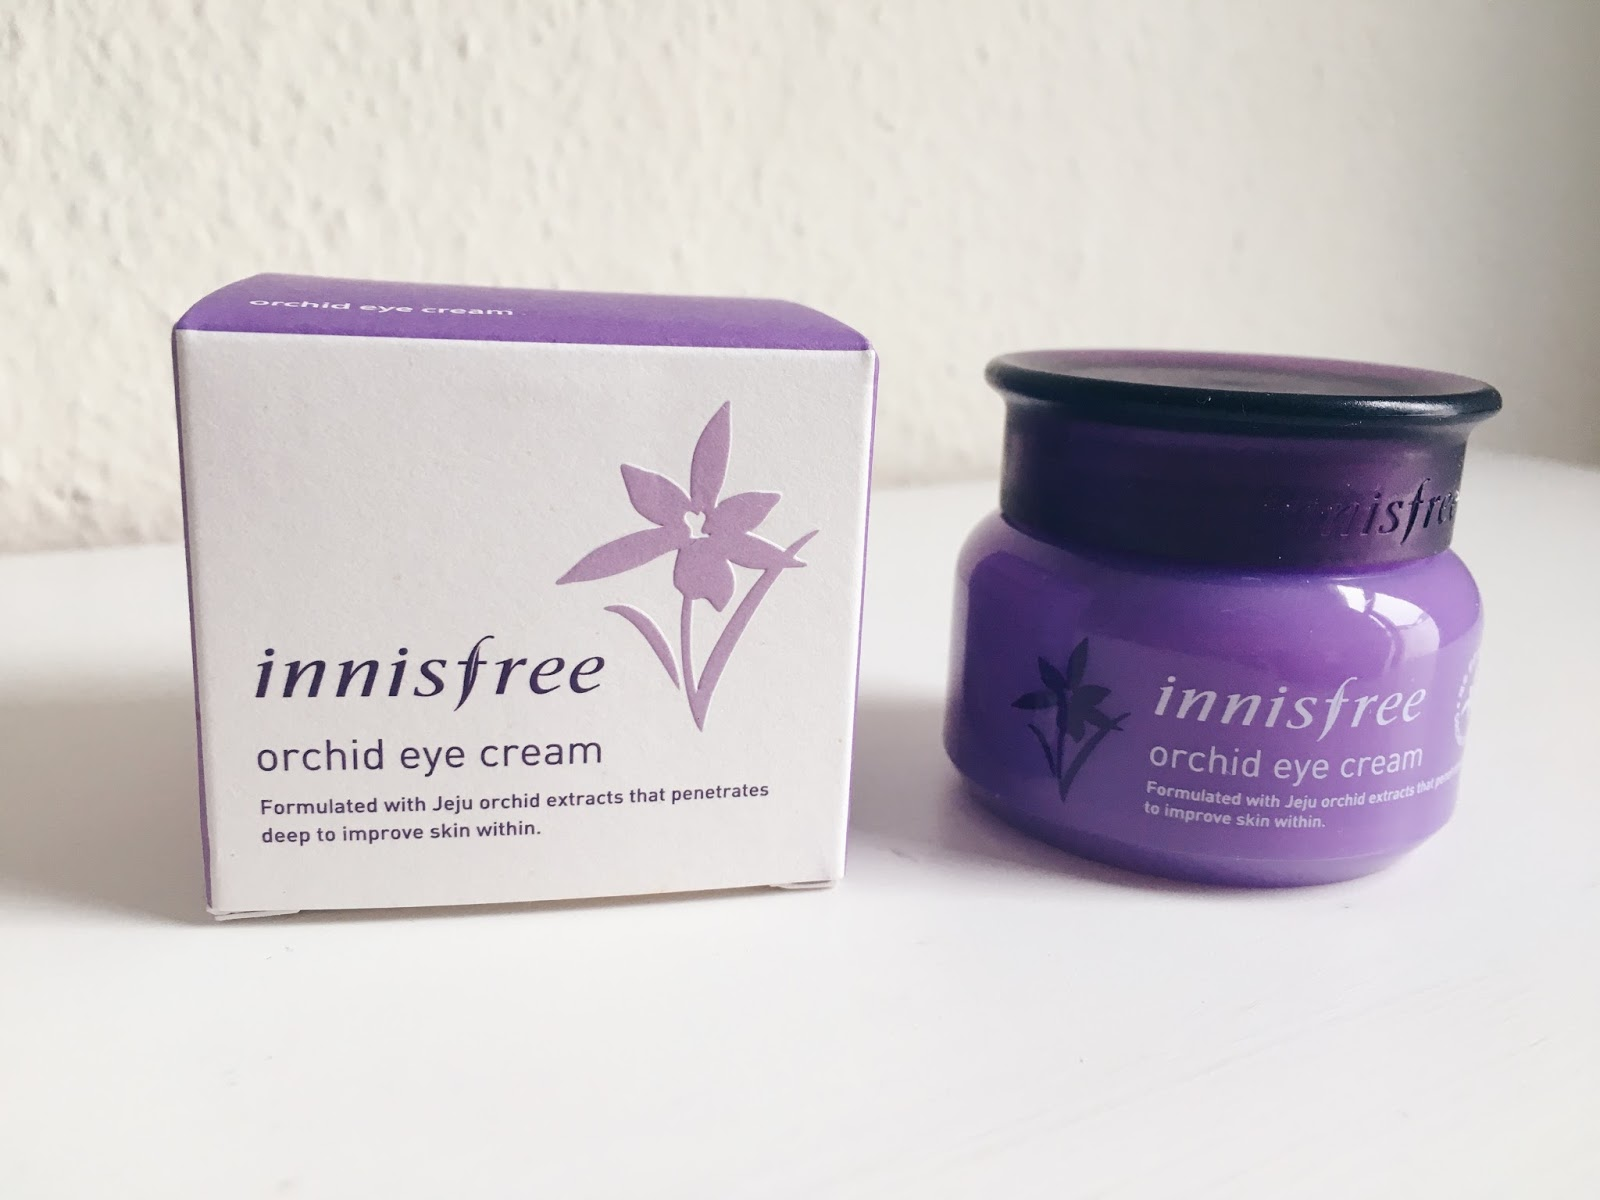 Innisfree Orchid Eye Cream Review Giselle Arianne Skin Is Not So New Addition To My Skincare Ive Started Incorporating It As Part Of Routine For More Than A Year Now When I Discovered